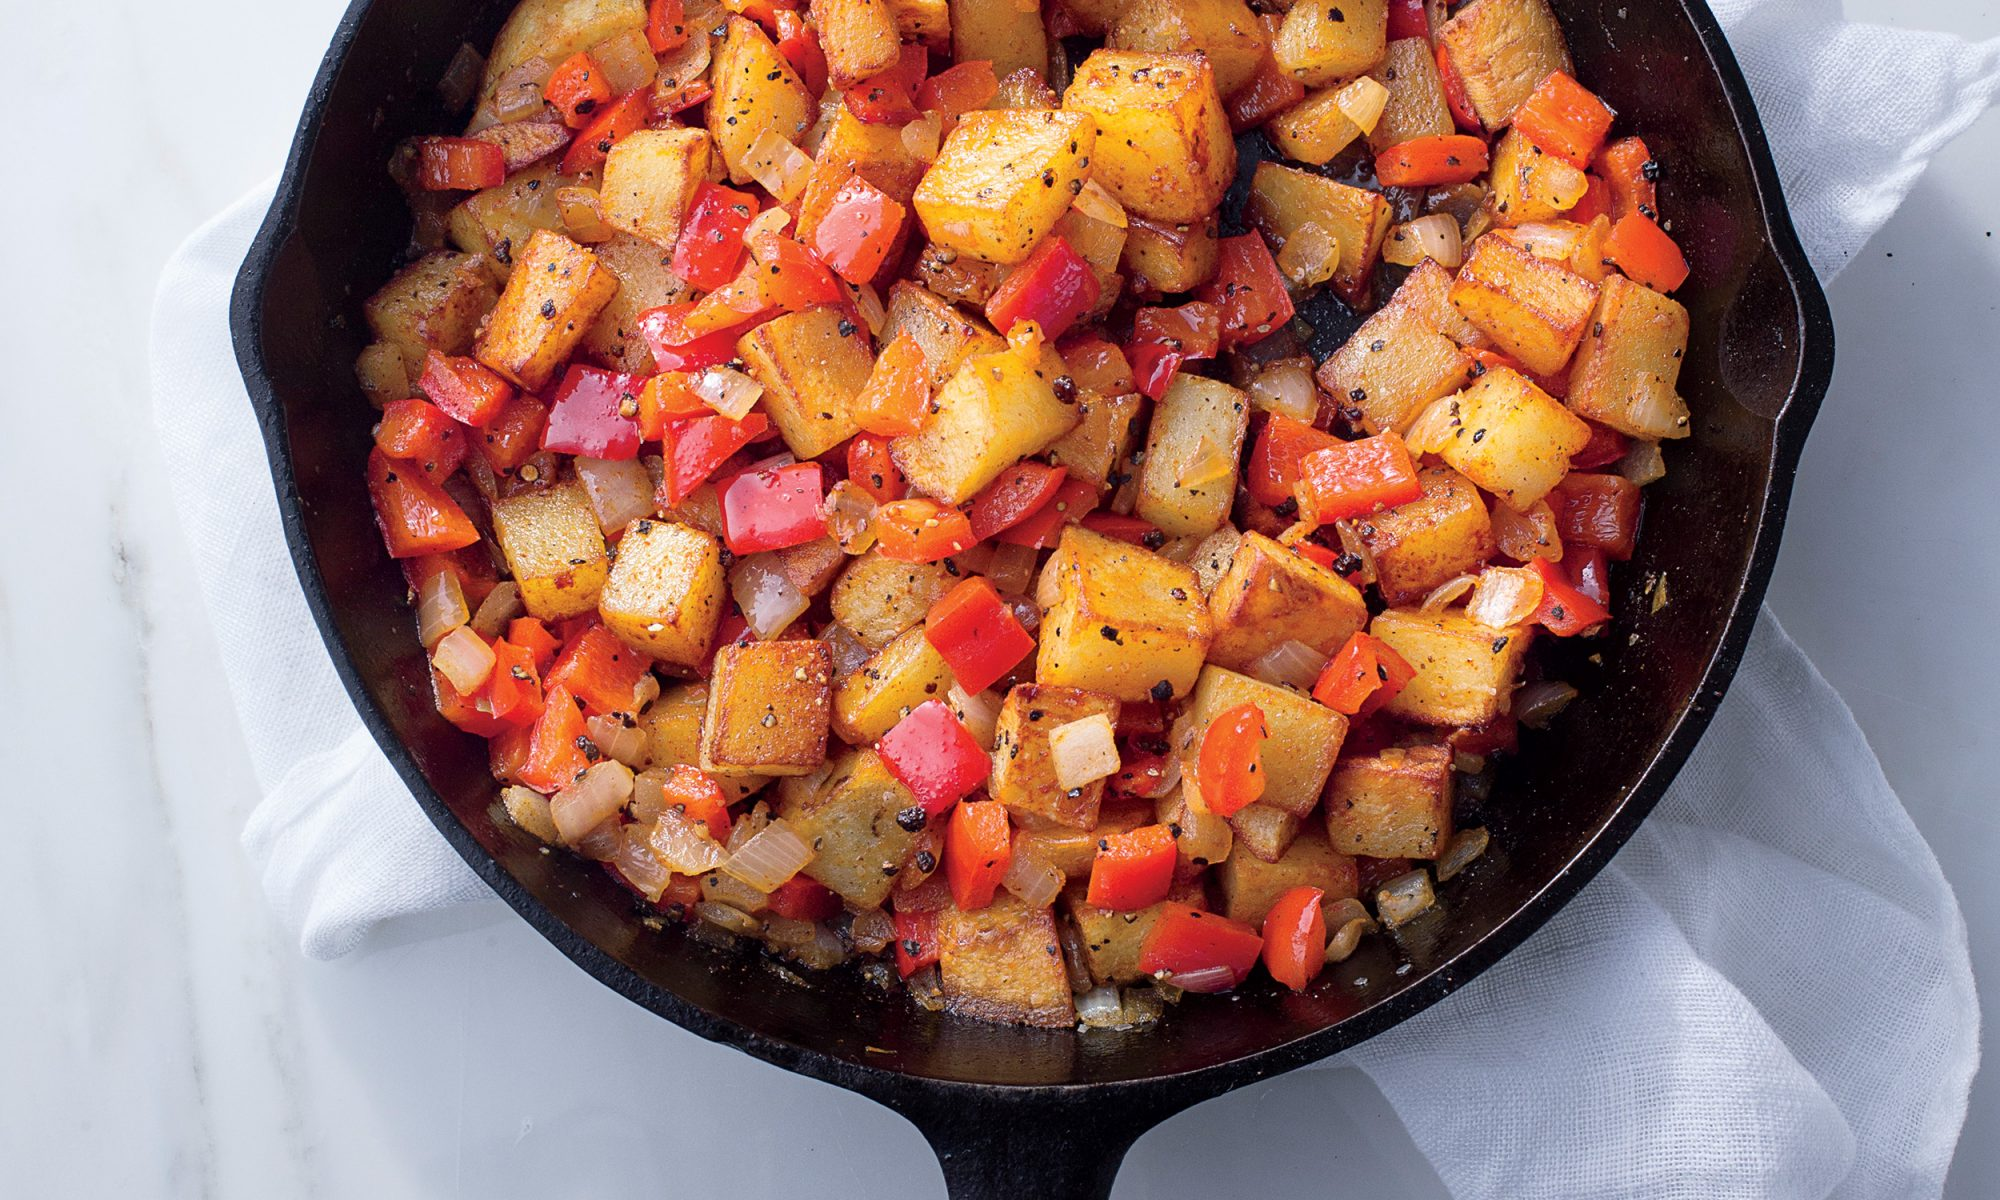 Make Spicy Home Fries in Under 30 Minutes